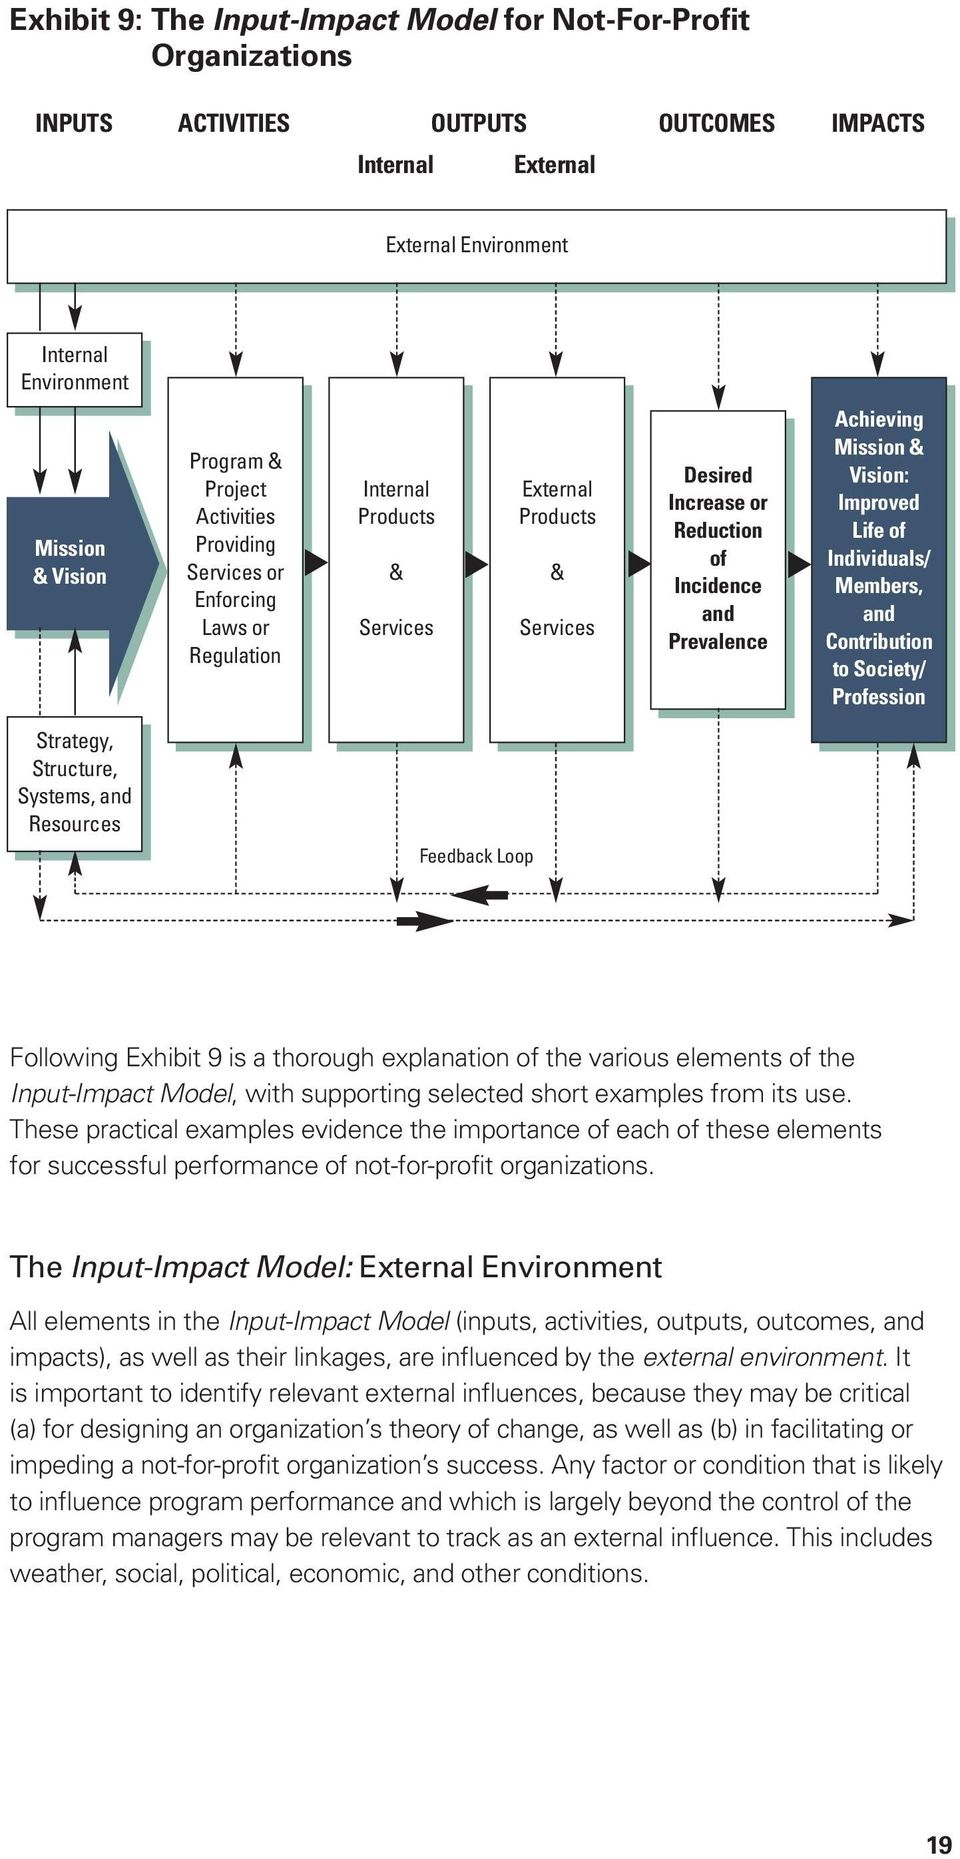 Mission & Vision: Improved Life of Individuals/ Members, and Contribution to Society/ Profession Strategy, Structure, Systems, and Resources Feedback Loop Following Exhibit 9 is a thorough